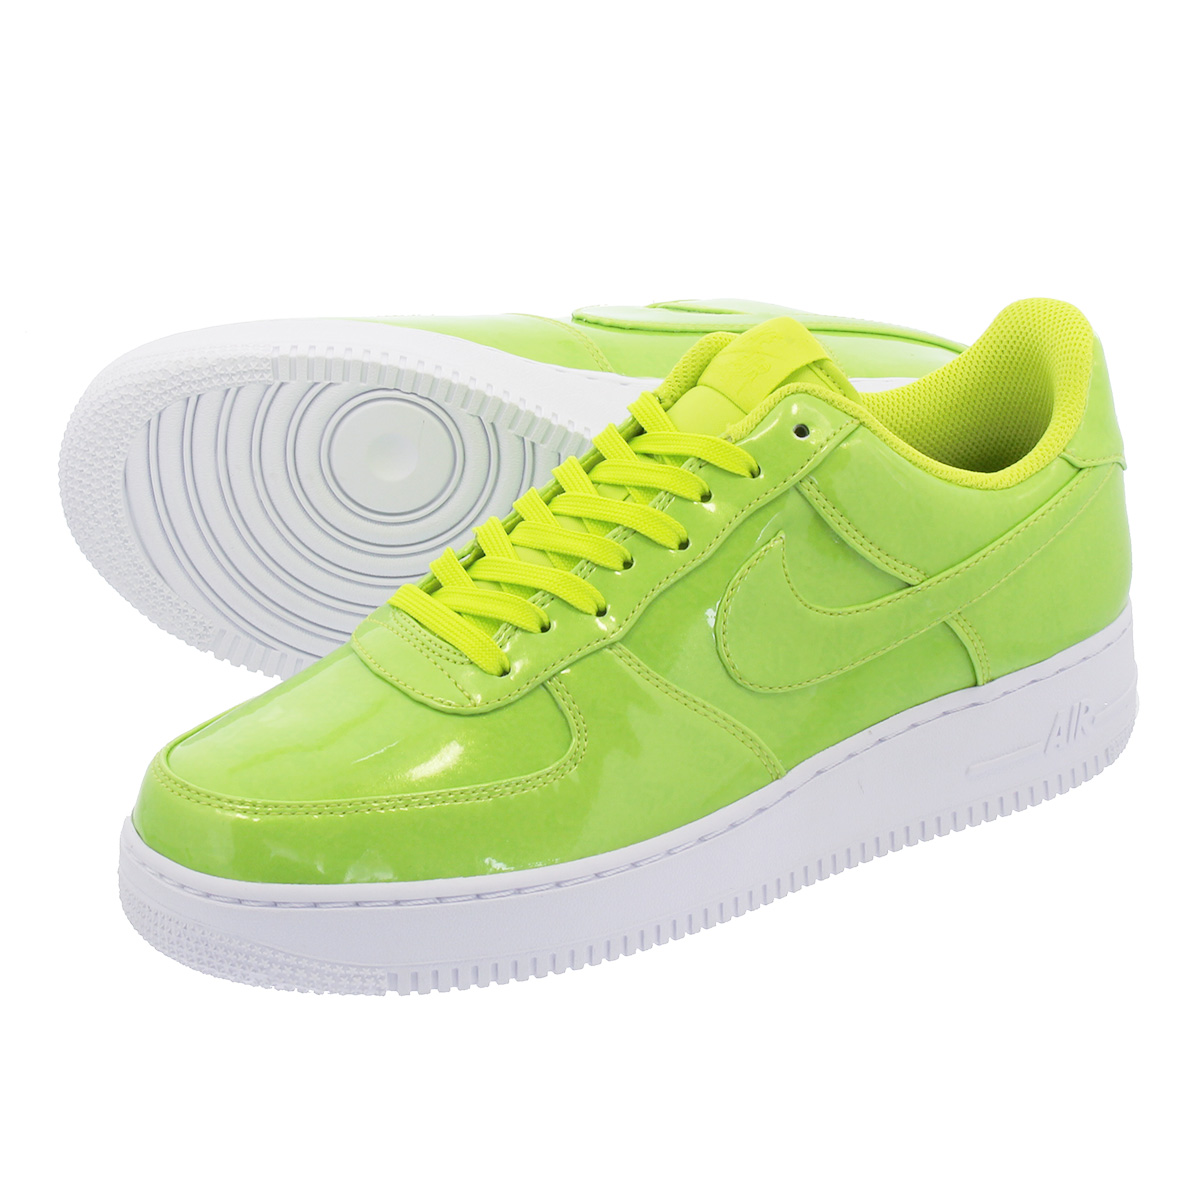 特価 NIKE AIR FORCE 1 LV8 '07 '07 LV8 LV8 UV ナイキ エア フォース 1 '07 LV8 UV CYBER/WHITE aj9505-300, 竜北町:bda66e5b --- supercanaltv.zonalivresh.dominiotemporario.com